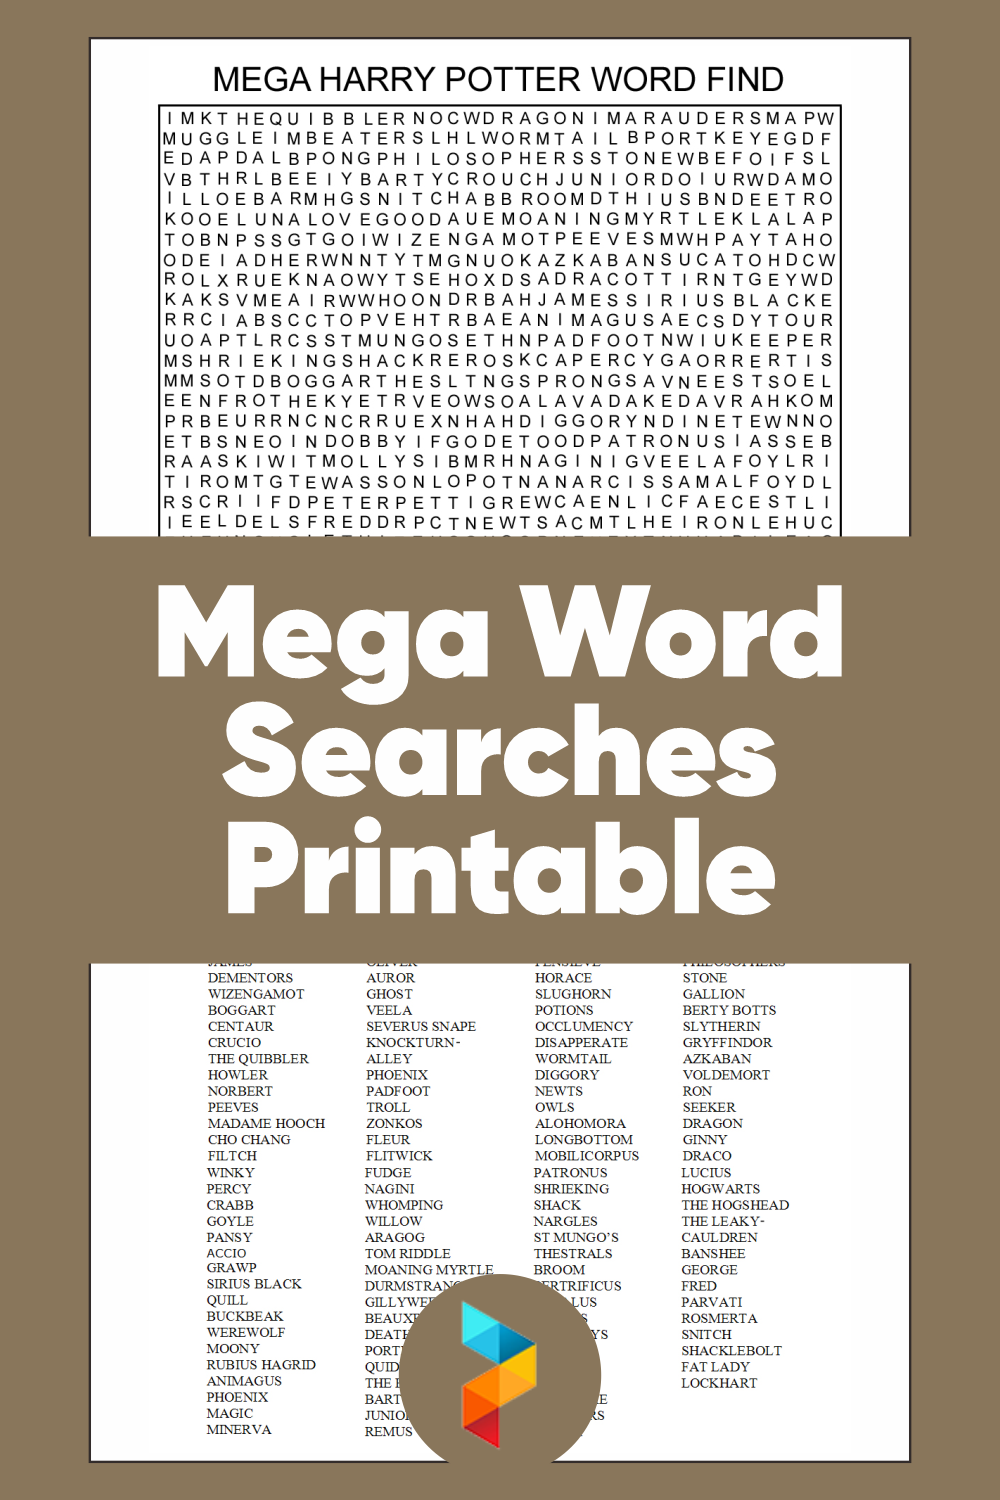 Mega Word Searches Printable